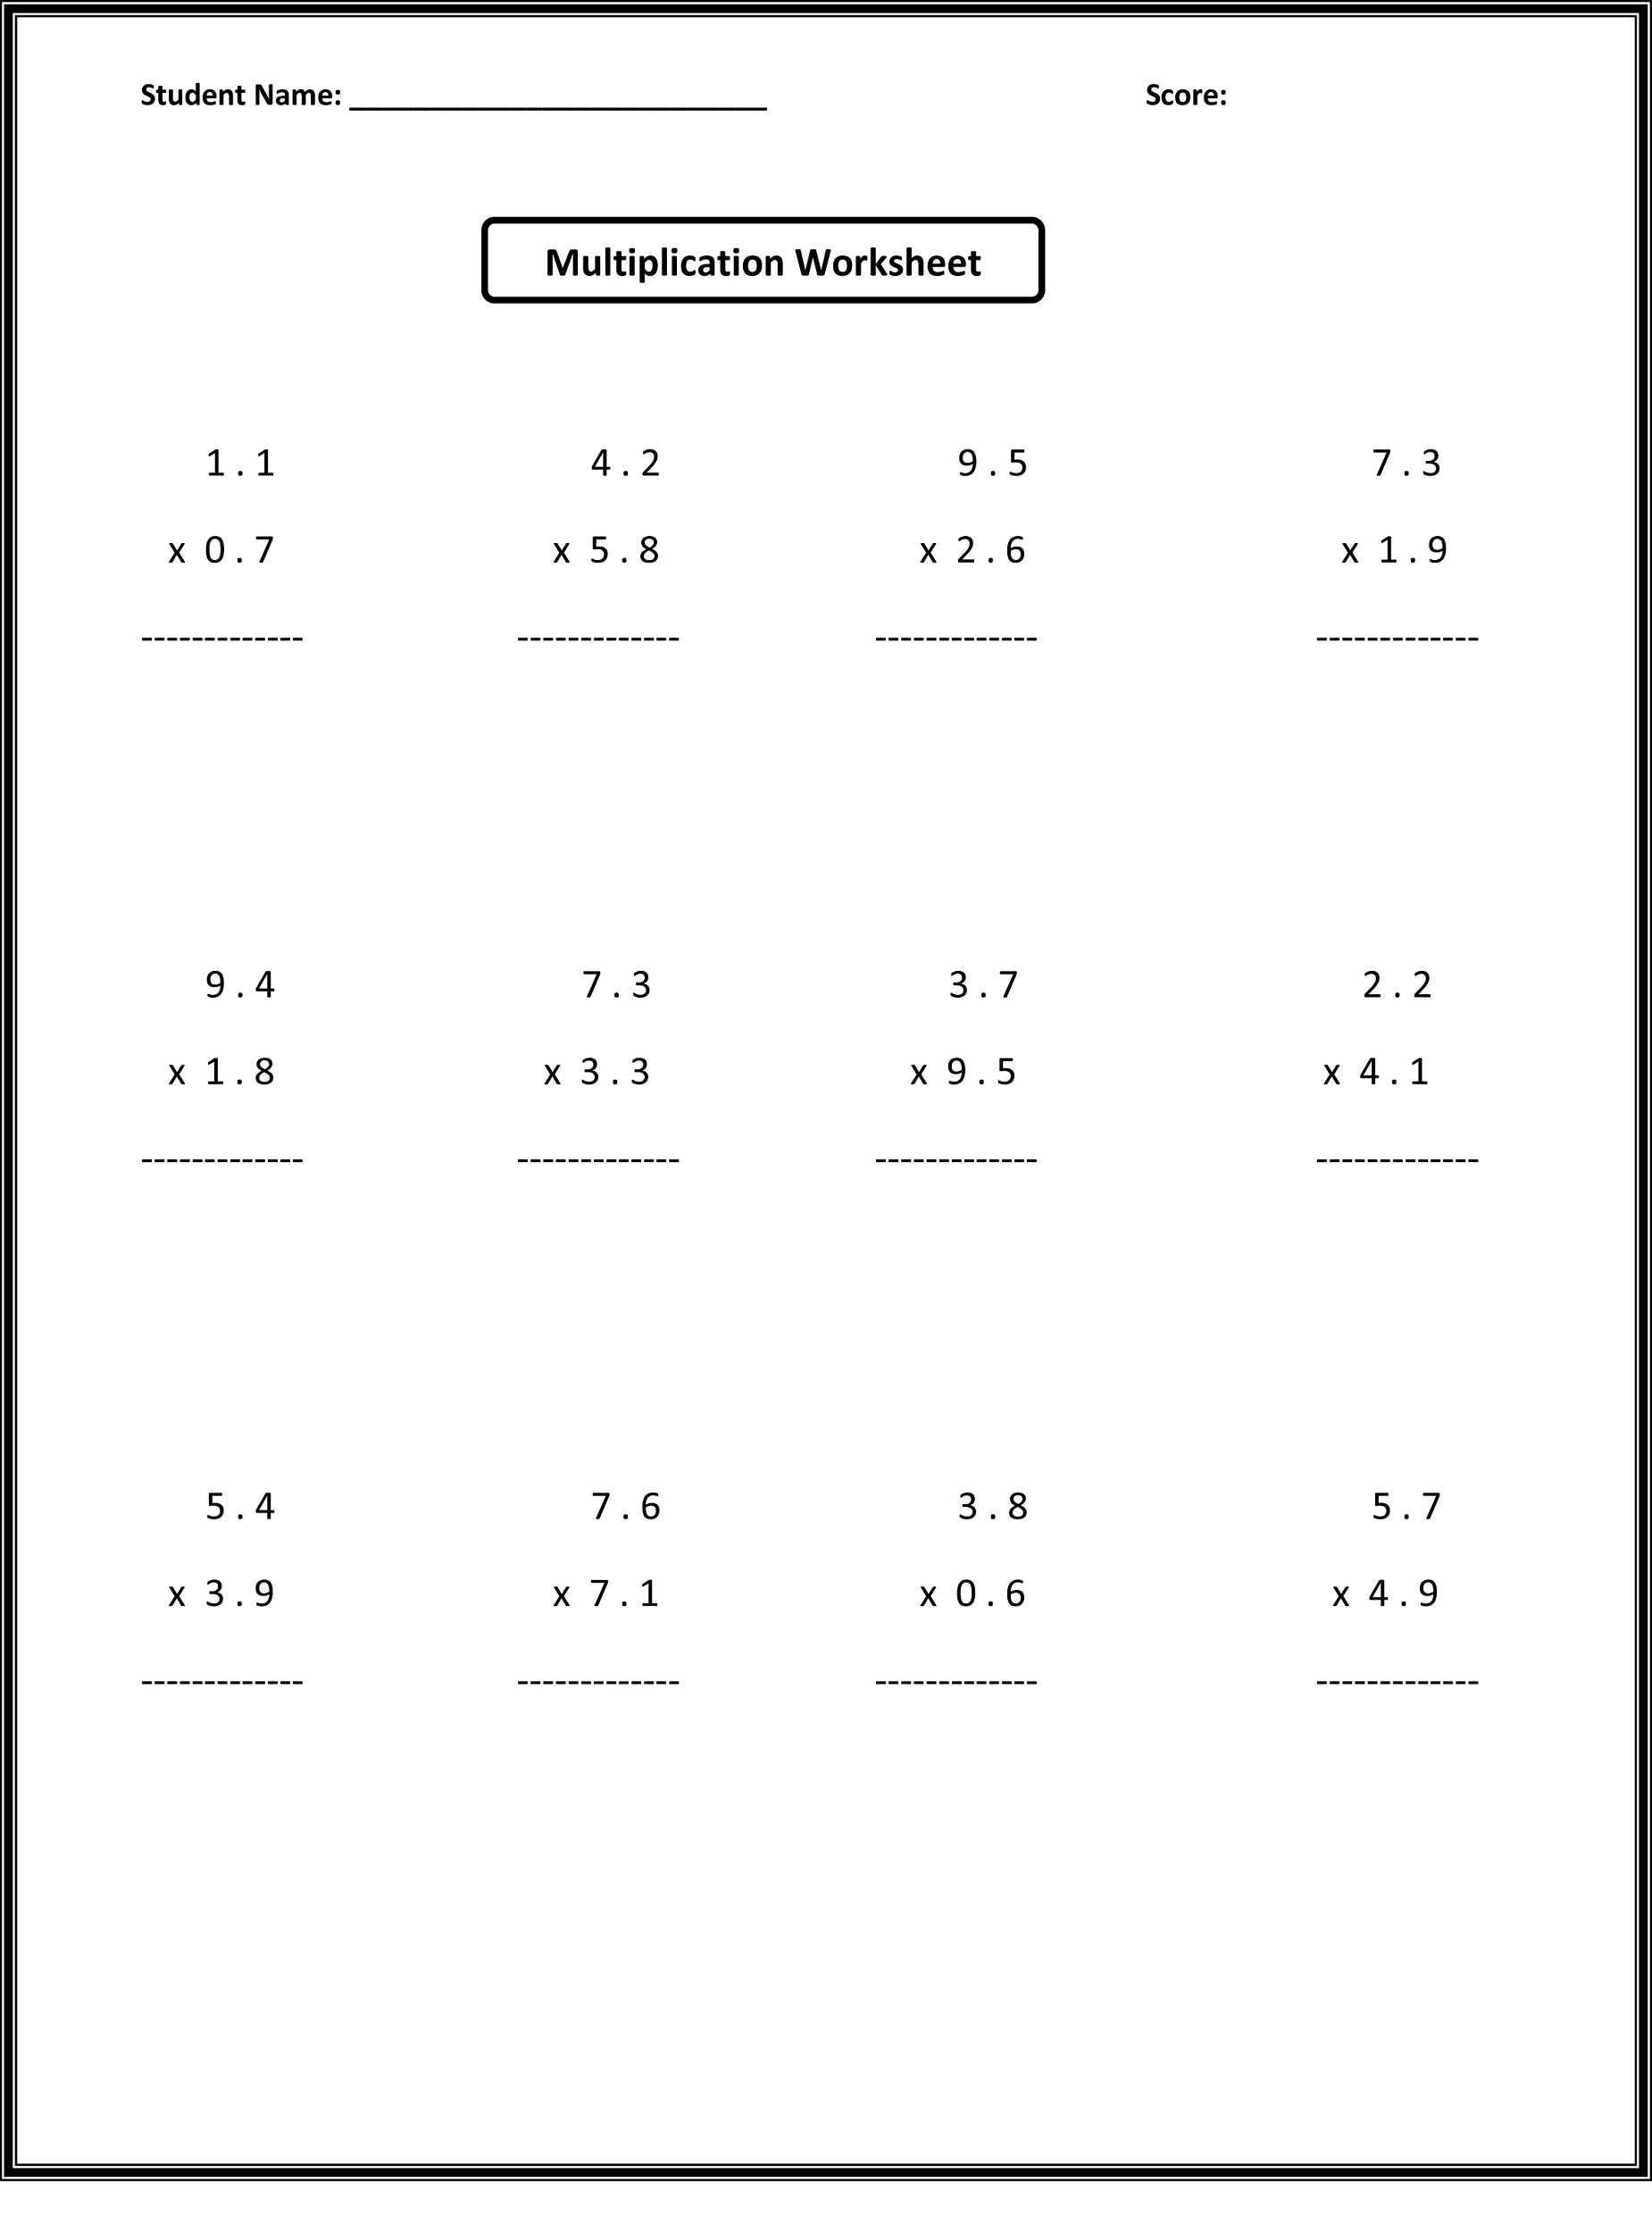 Coordinate Grid Worksheets 6th Grade Operations with Integers Worksheet Ducktales Coloring Pages